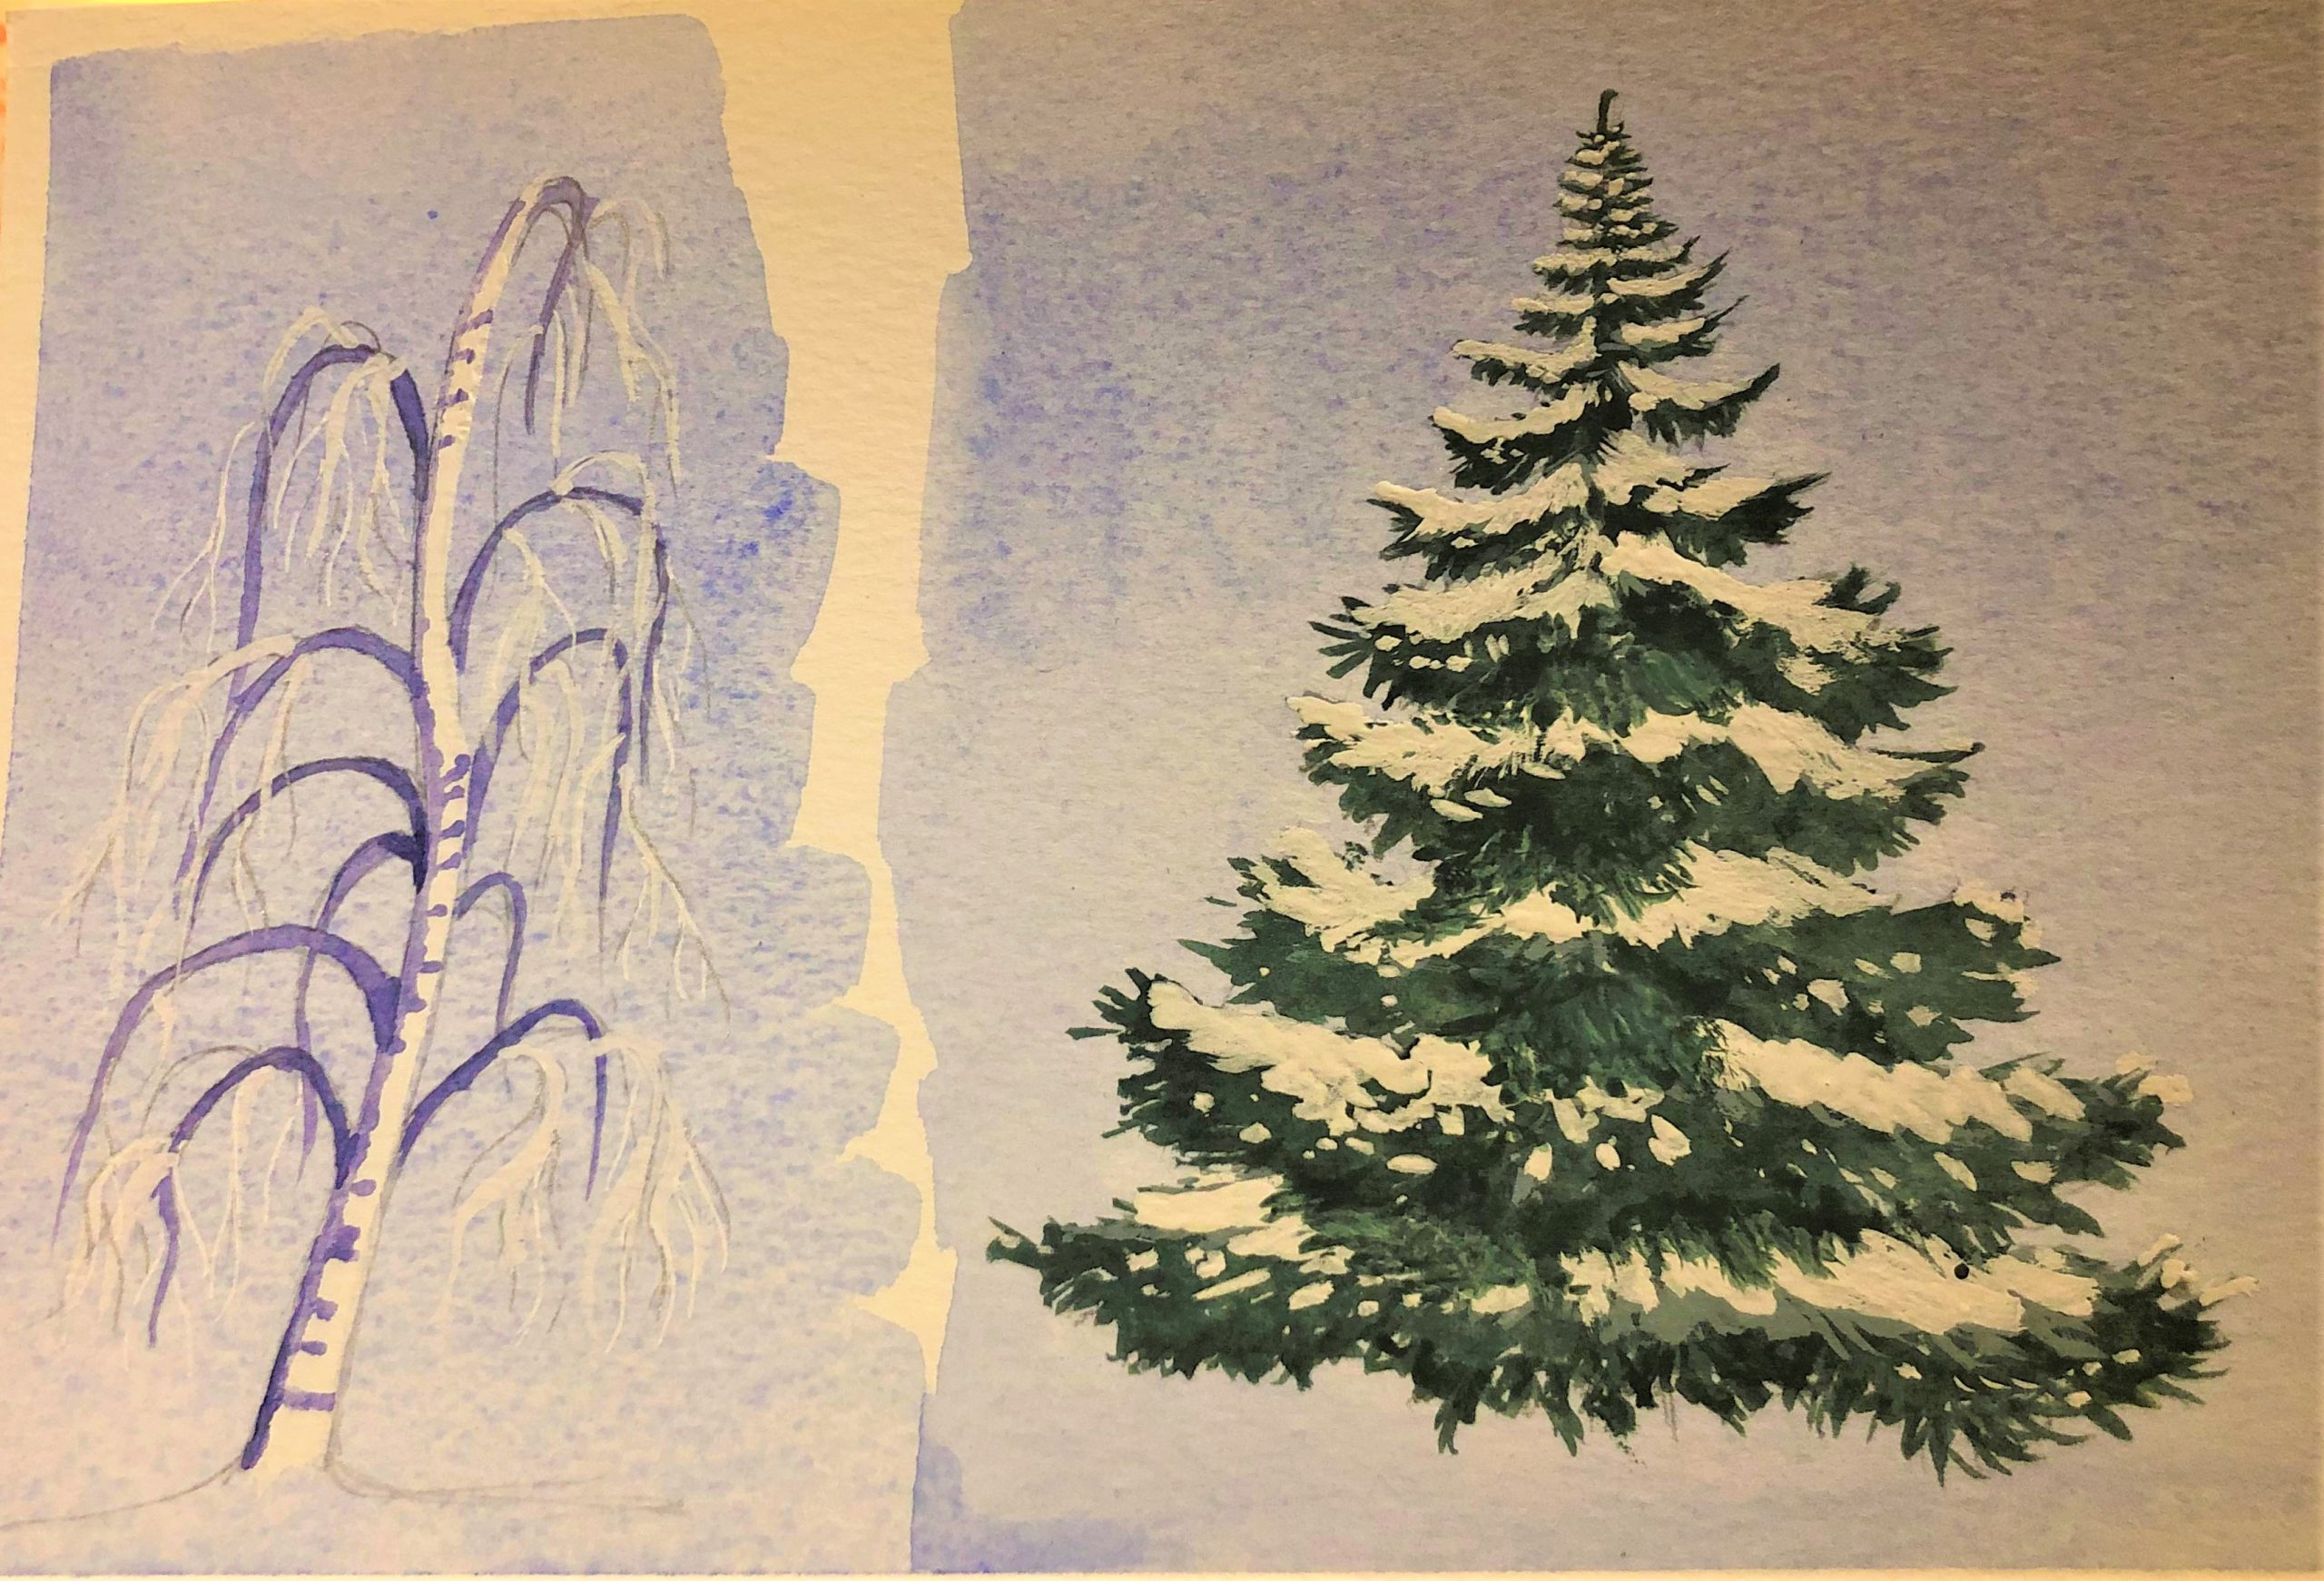 study of winter trees by Zoe